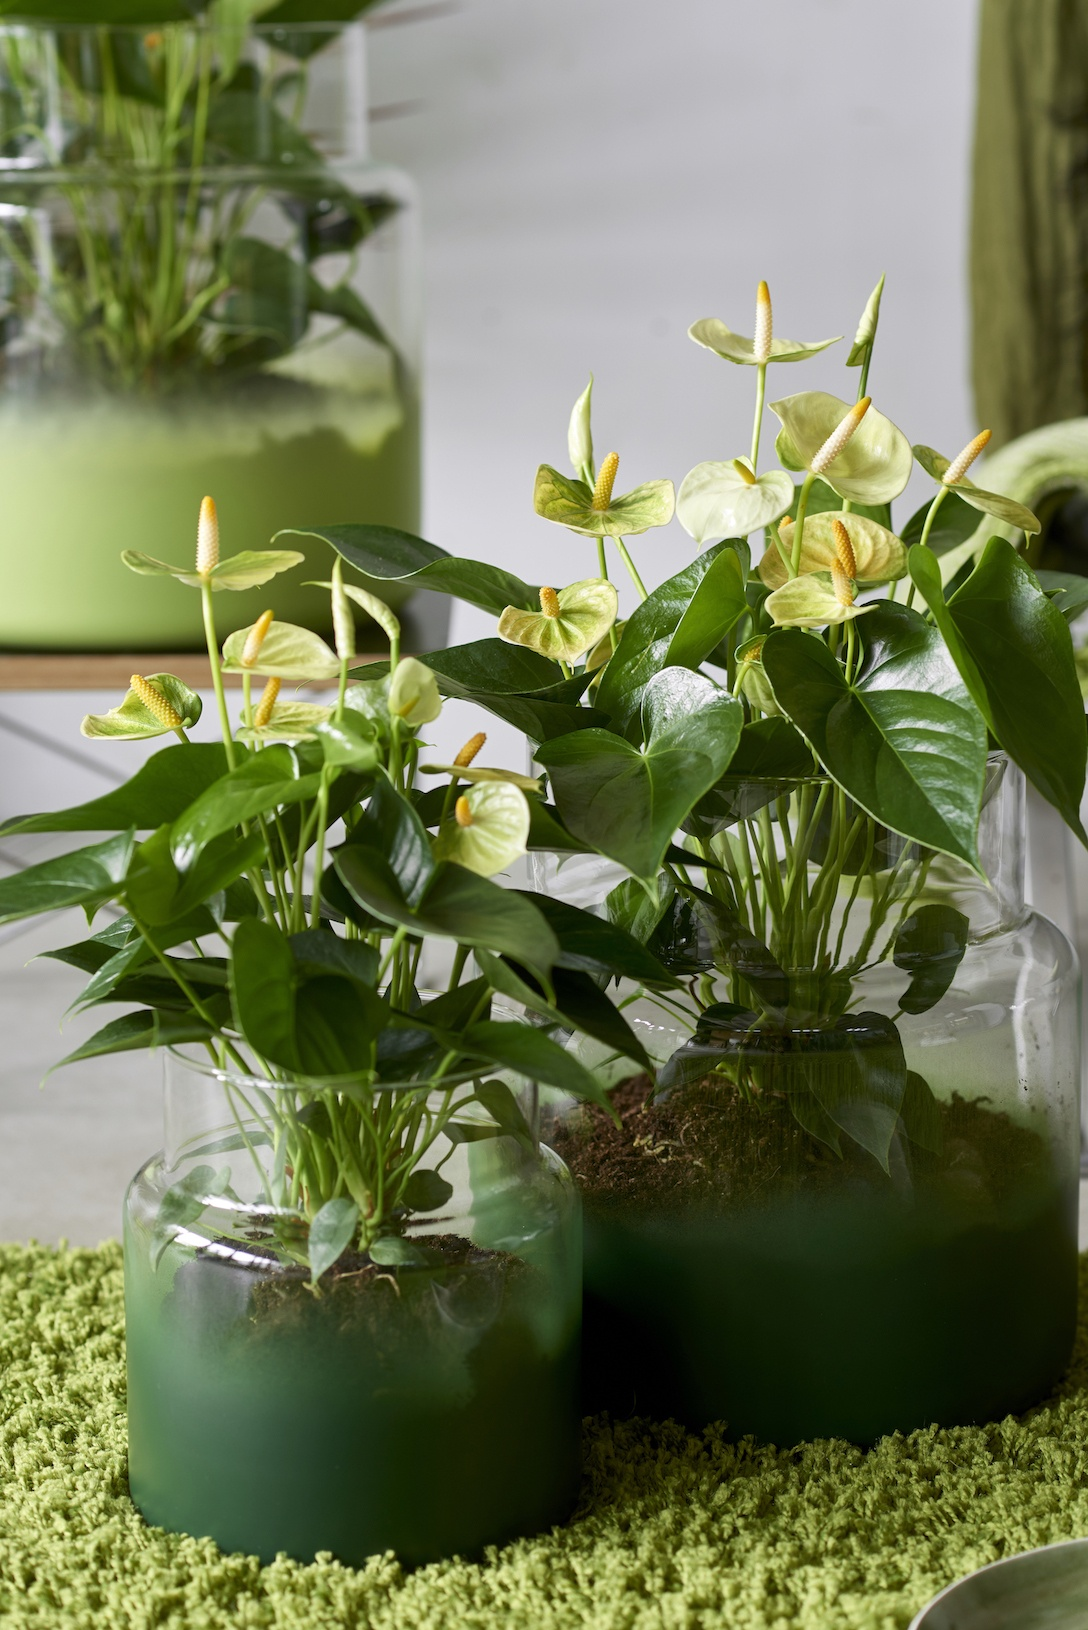 voorjaar-in-huis-planten-anthurium-plant-urban-jungle-groen-trend ...